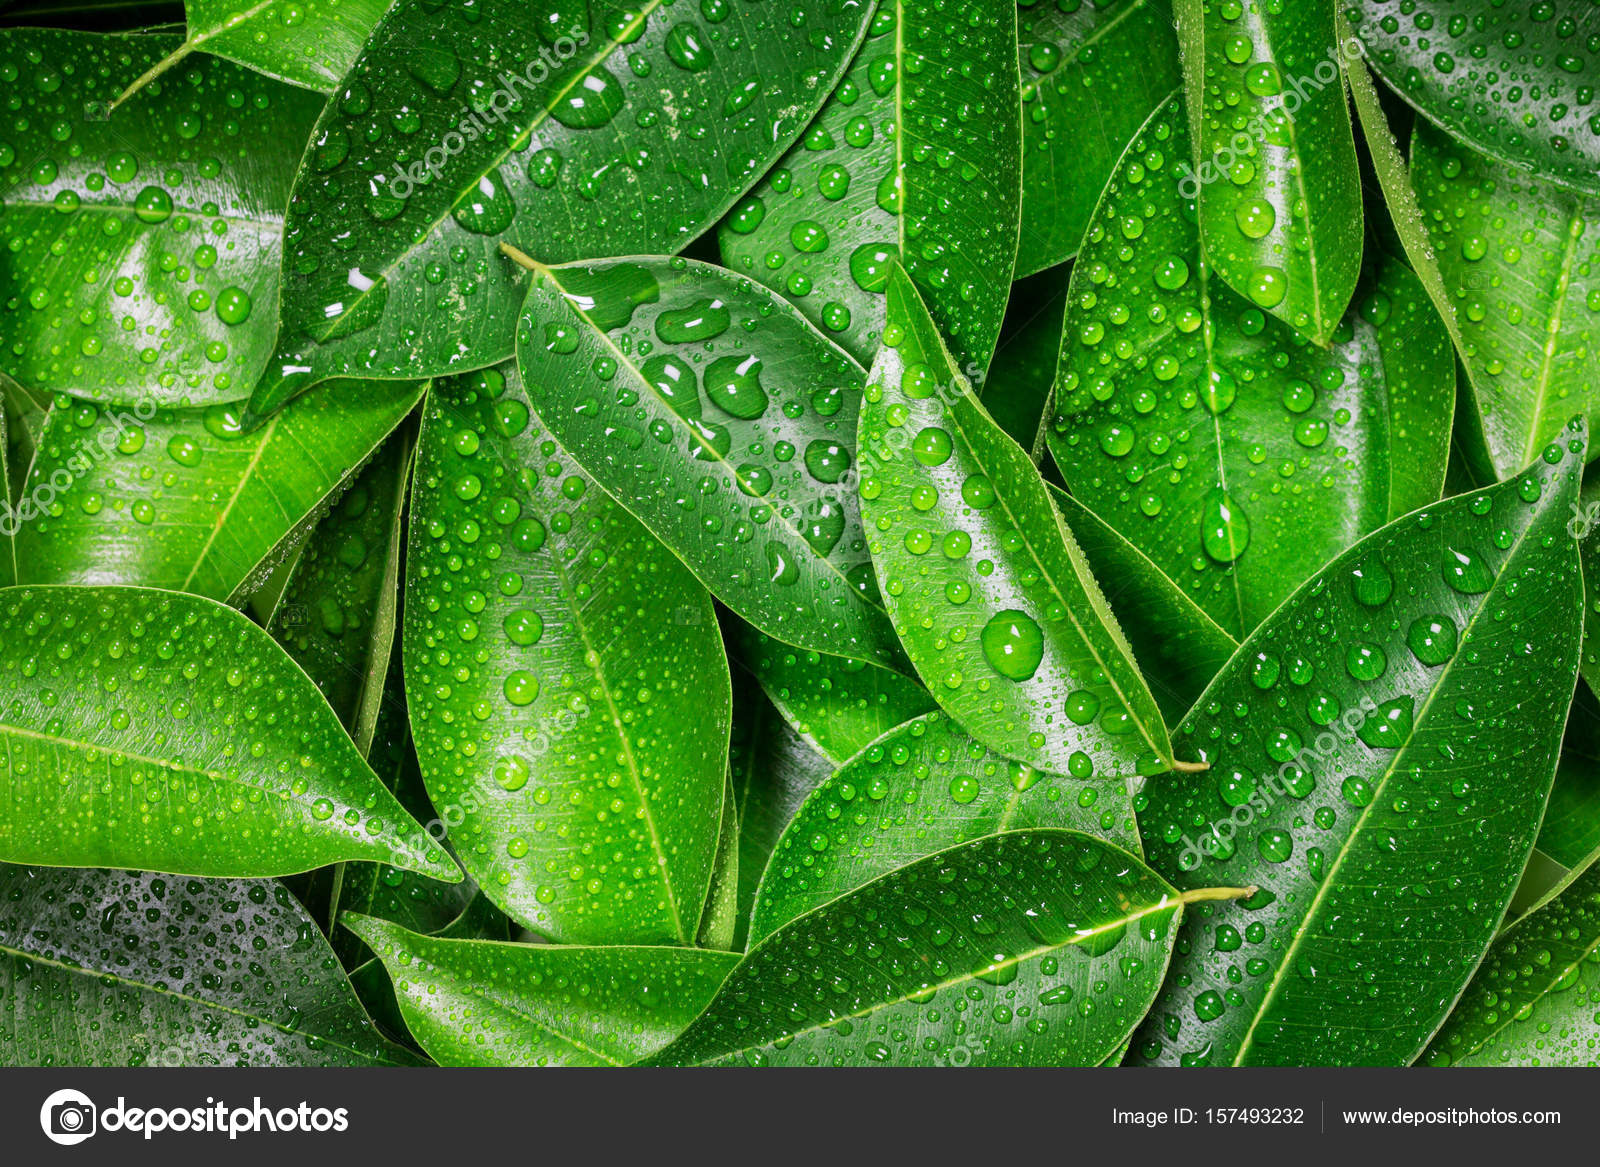 Wet Fresh Tropical Green Leaves Background Stock Photo C Photorista 157493232 Support us by sharing the content, upvoting wallpapers on the page or sending your own. https depositphotos com 157493232 stock photo wet fresh tropical green leaves html